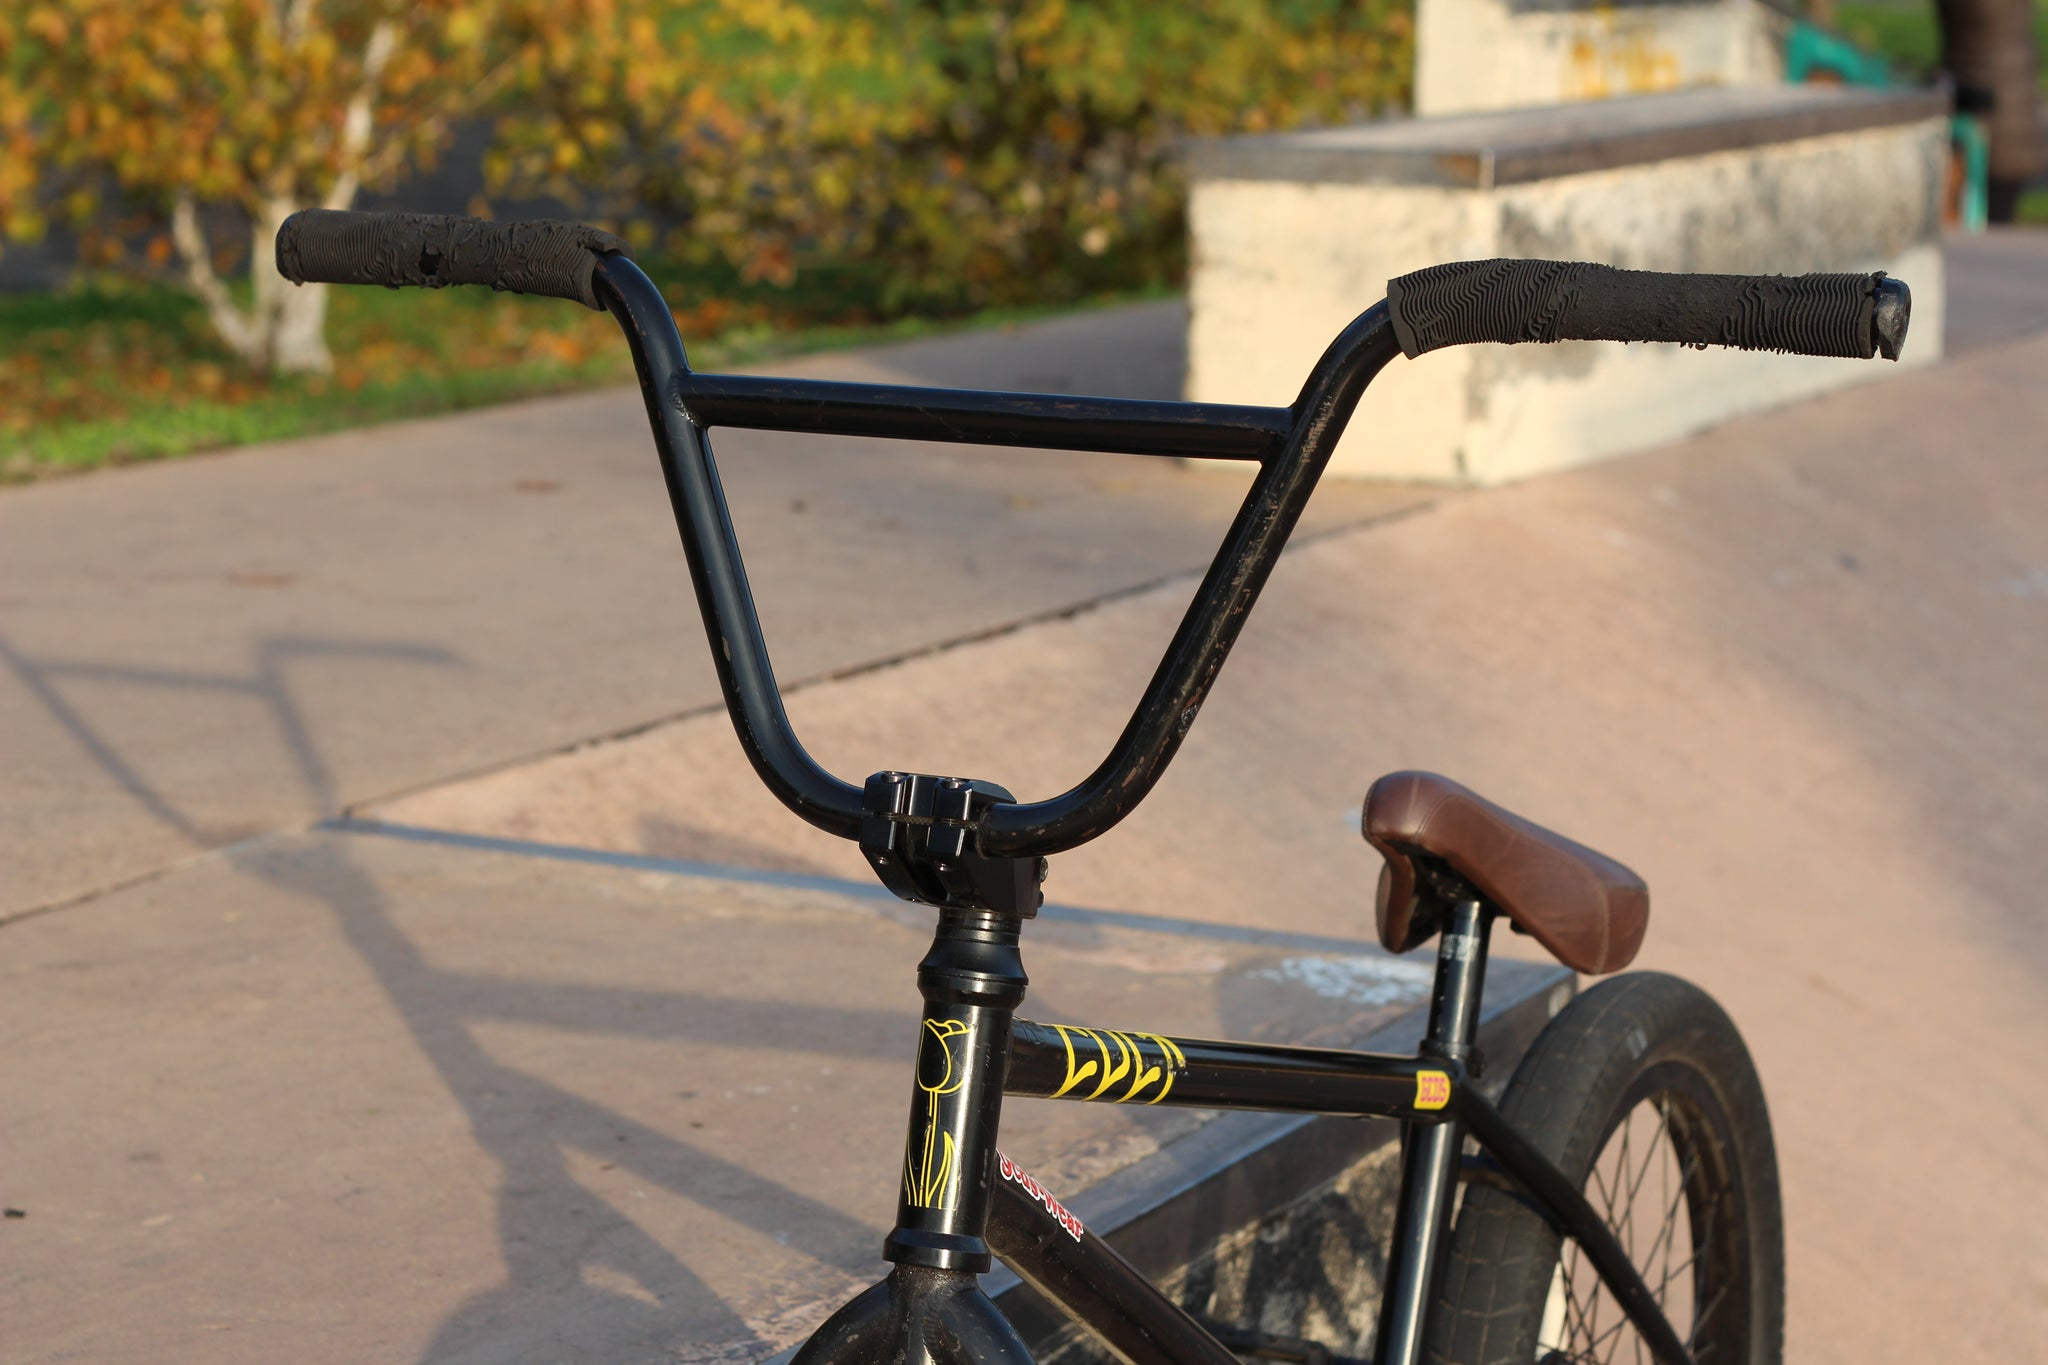 luca nosella bike check frontocean bmx cult shadow odyssey federal